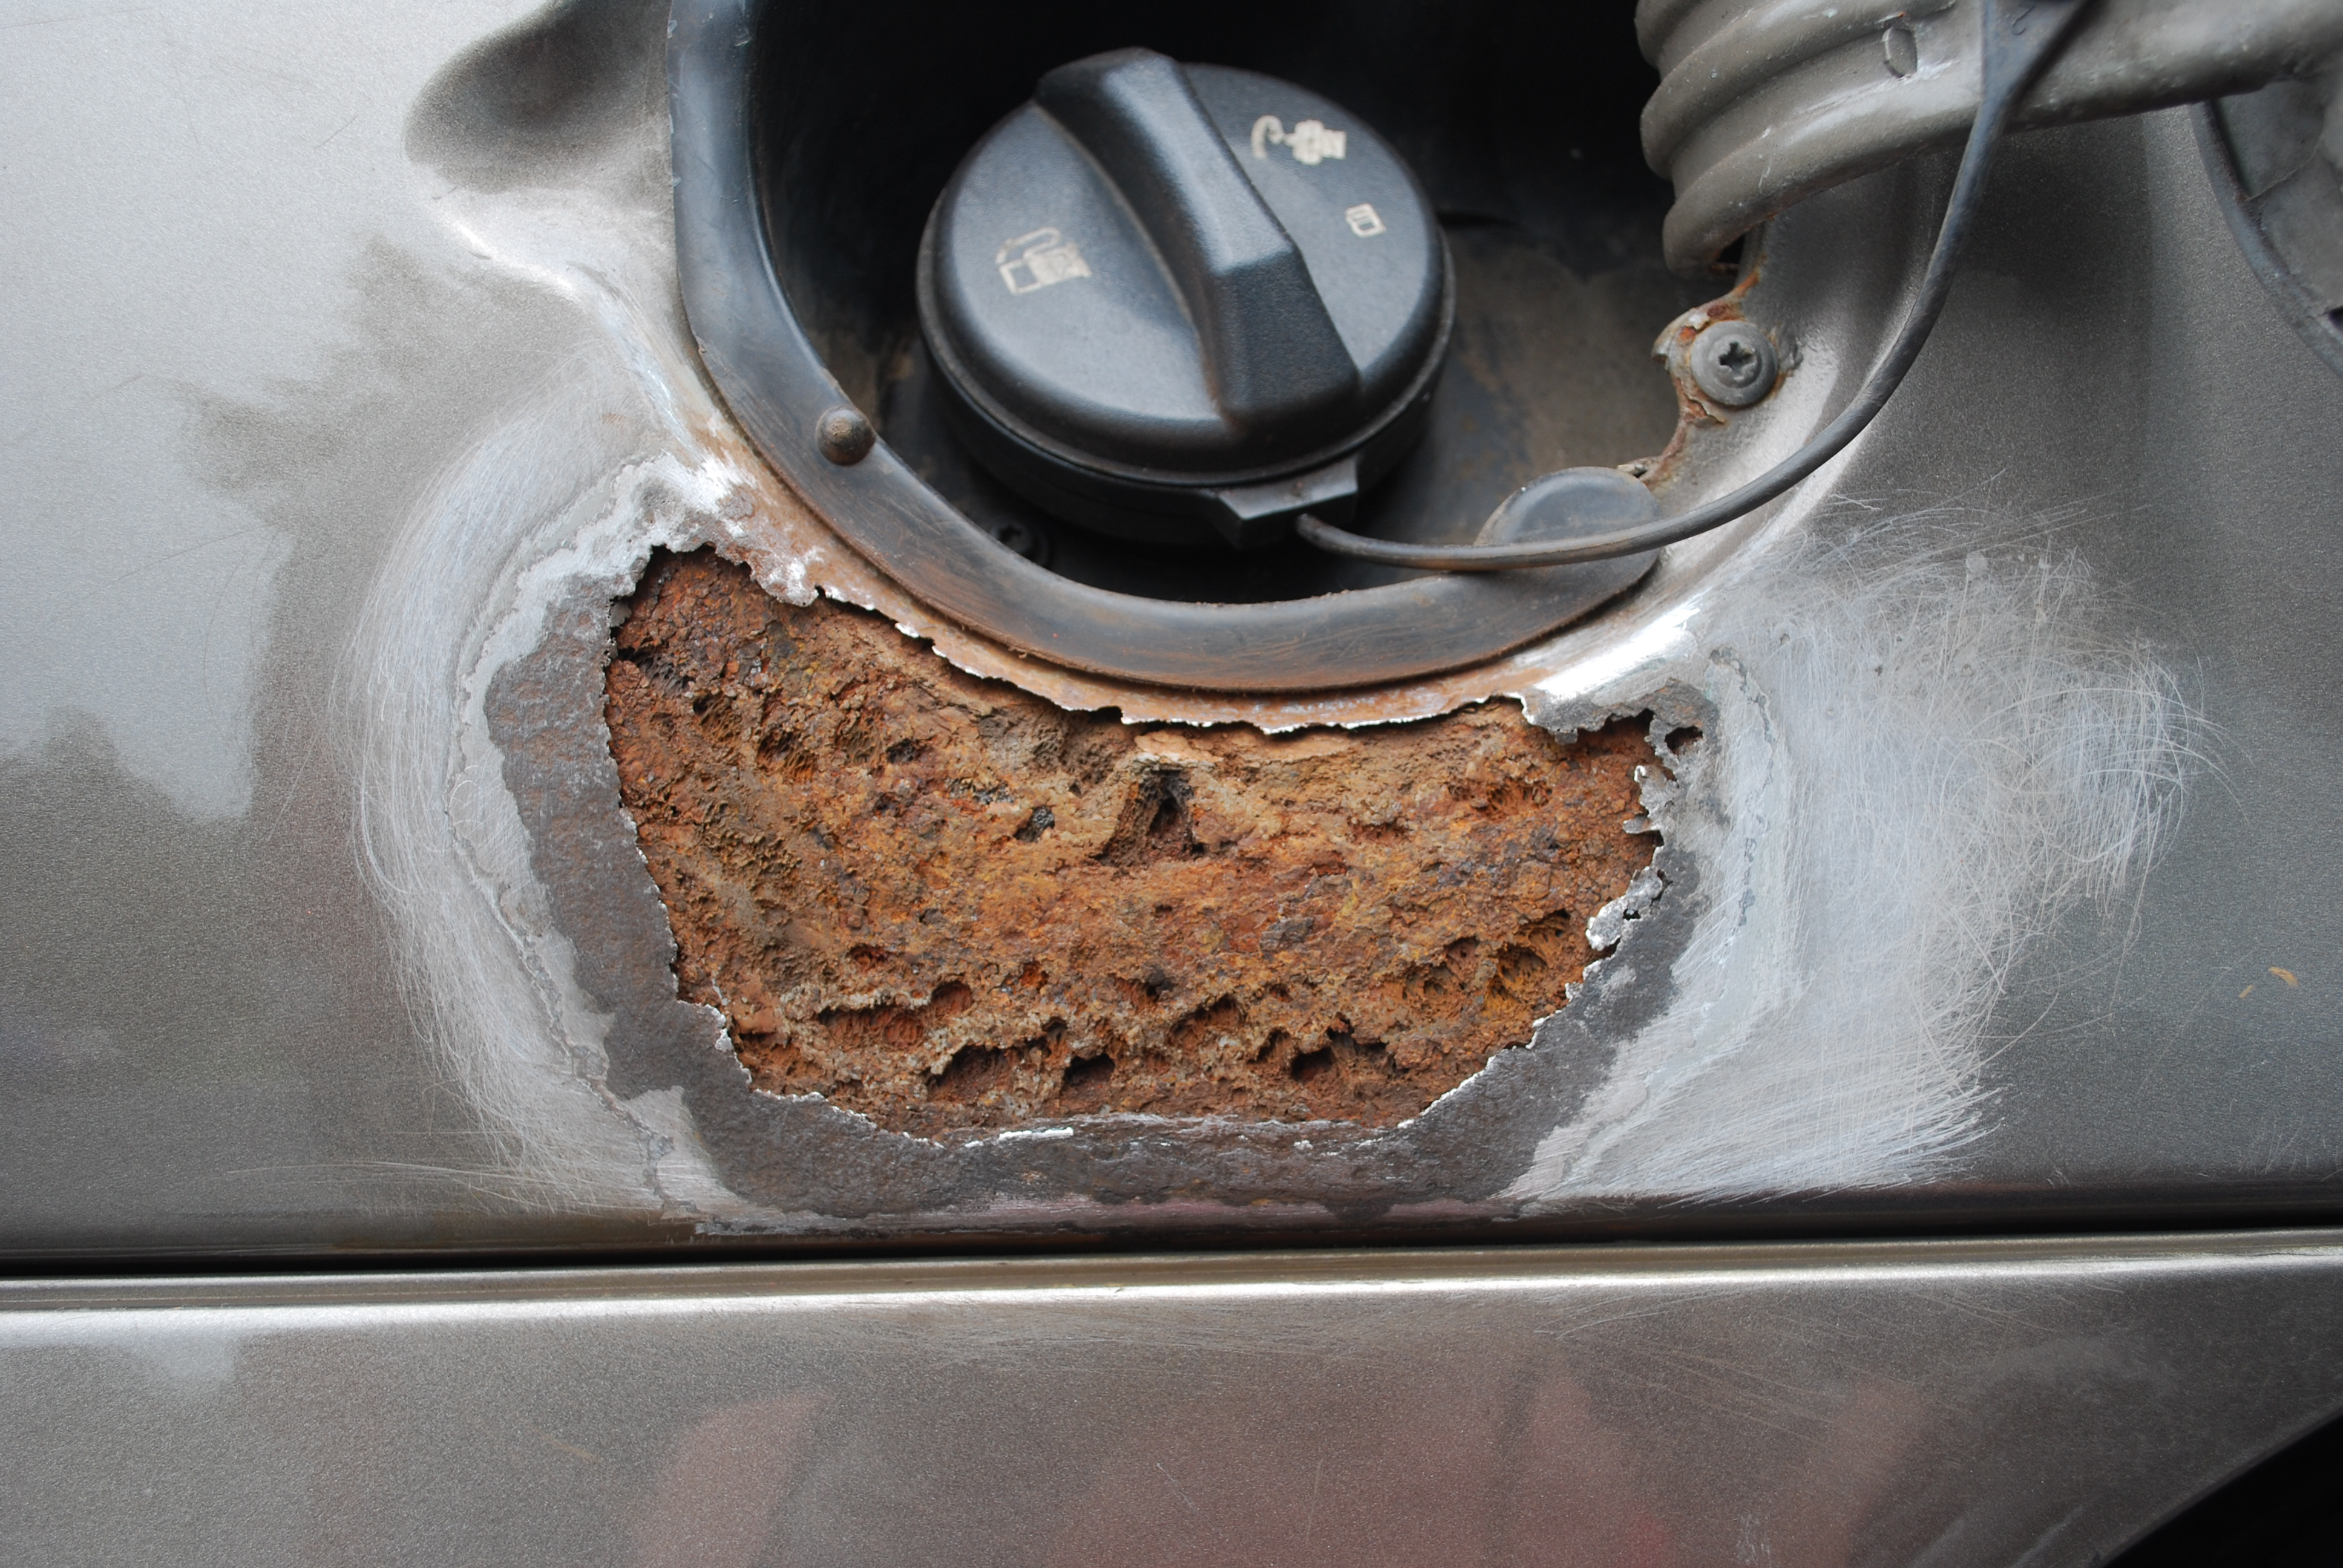 repairing a rust hole in a car